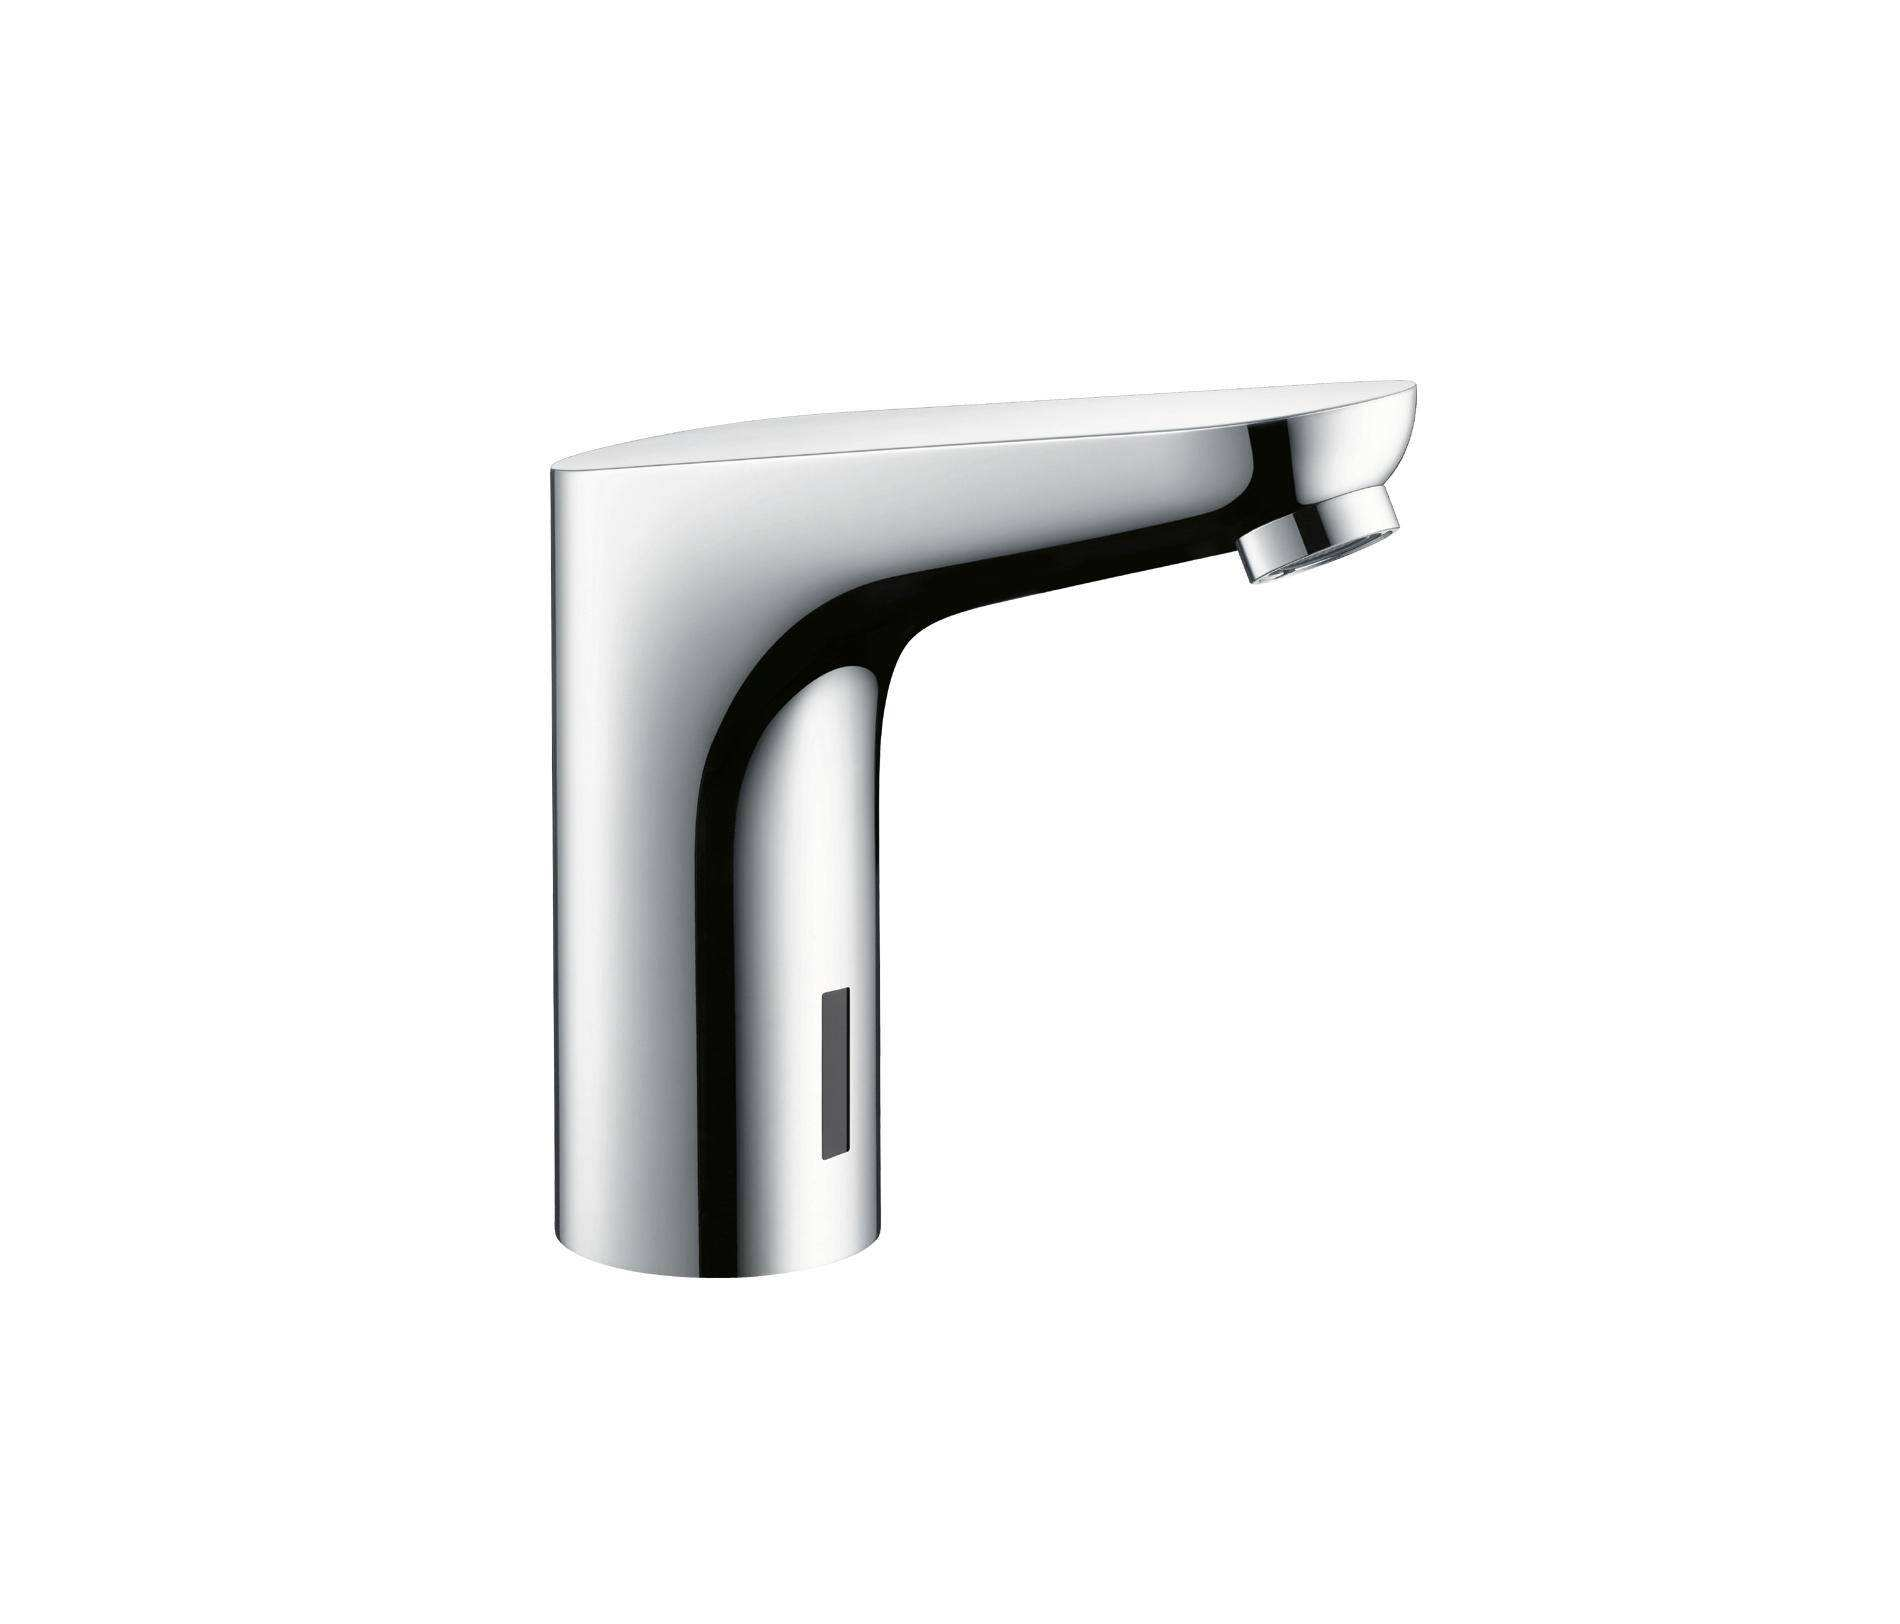 Hans Grohe Hansgrohe Focus Electronic Basin Mixer Dn15 Battery